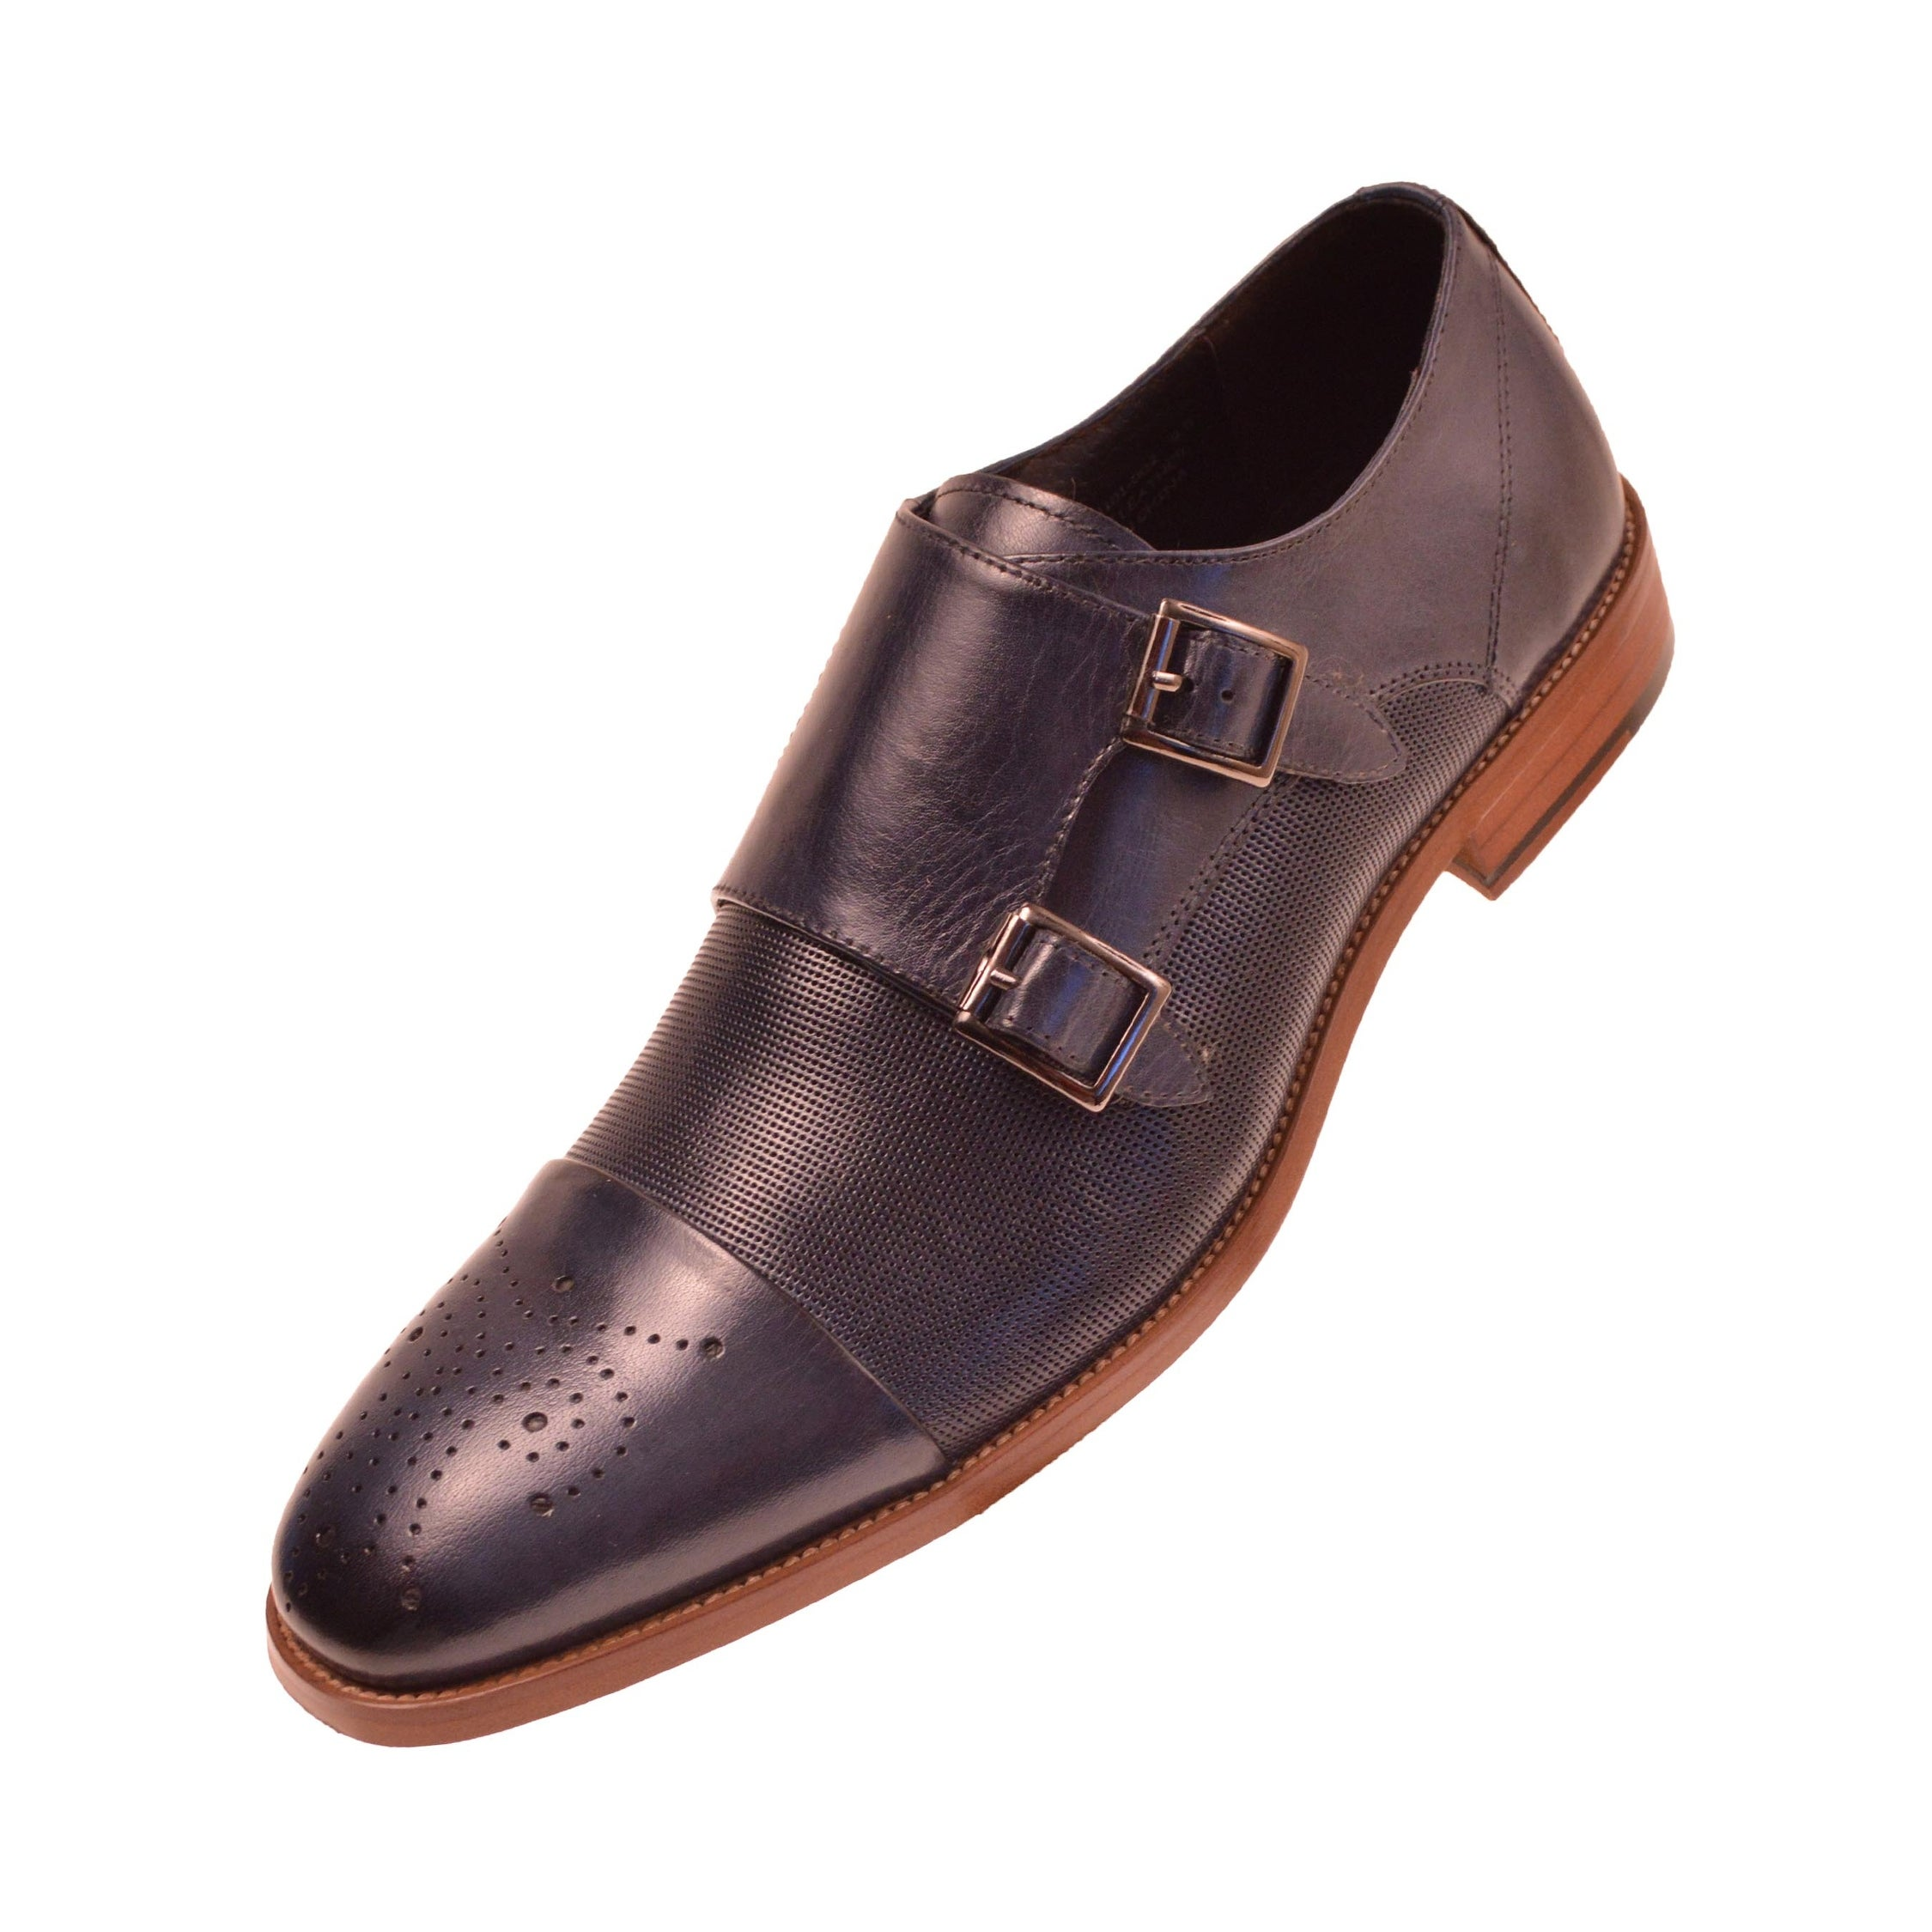 7914db10d2a46 Asher Green Mens Genuine Calf Leather Monk Strap